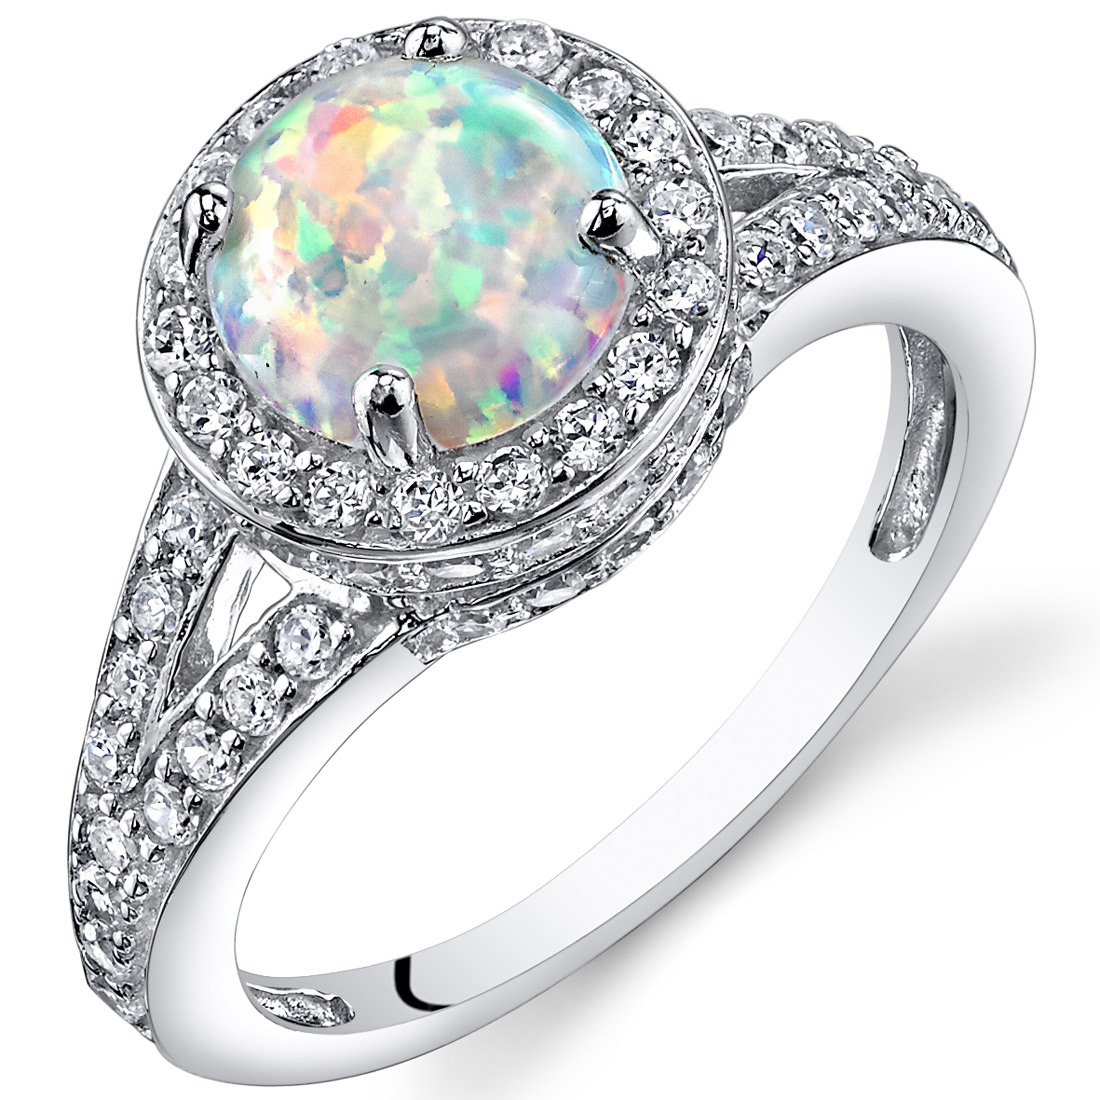 Peora 1.25 Ct Created Opal Engagement Ring in Rhodium-Plated Sterling Silver